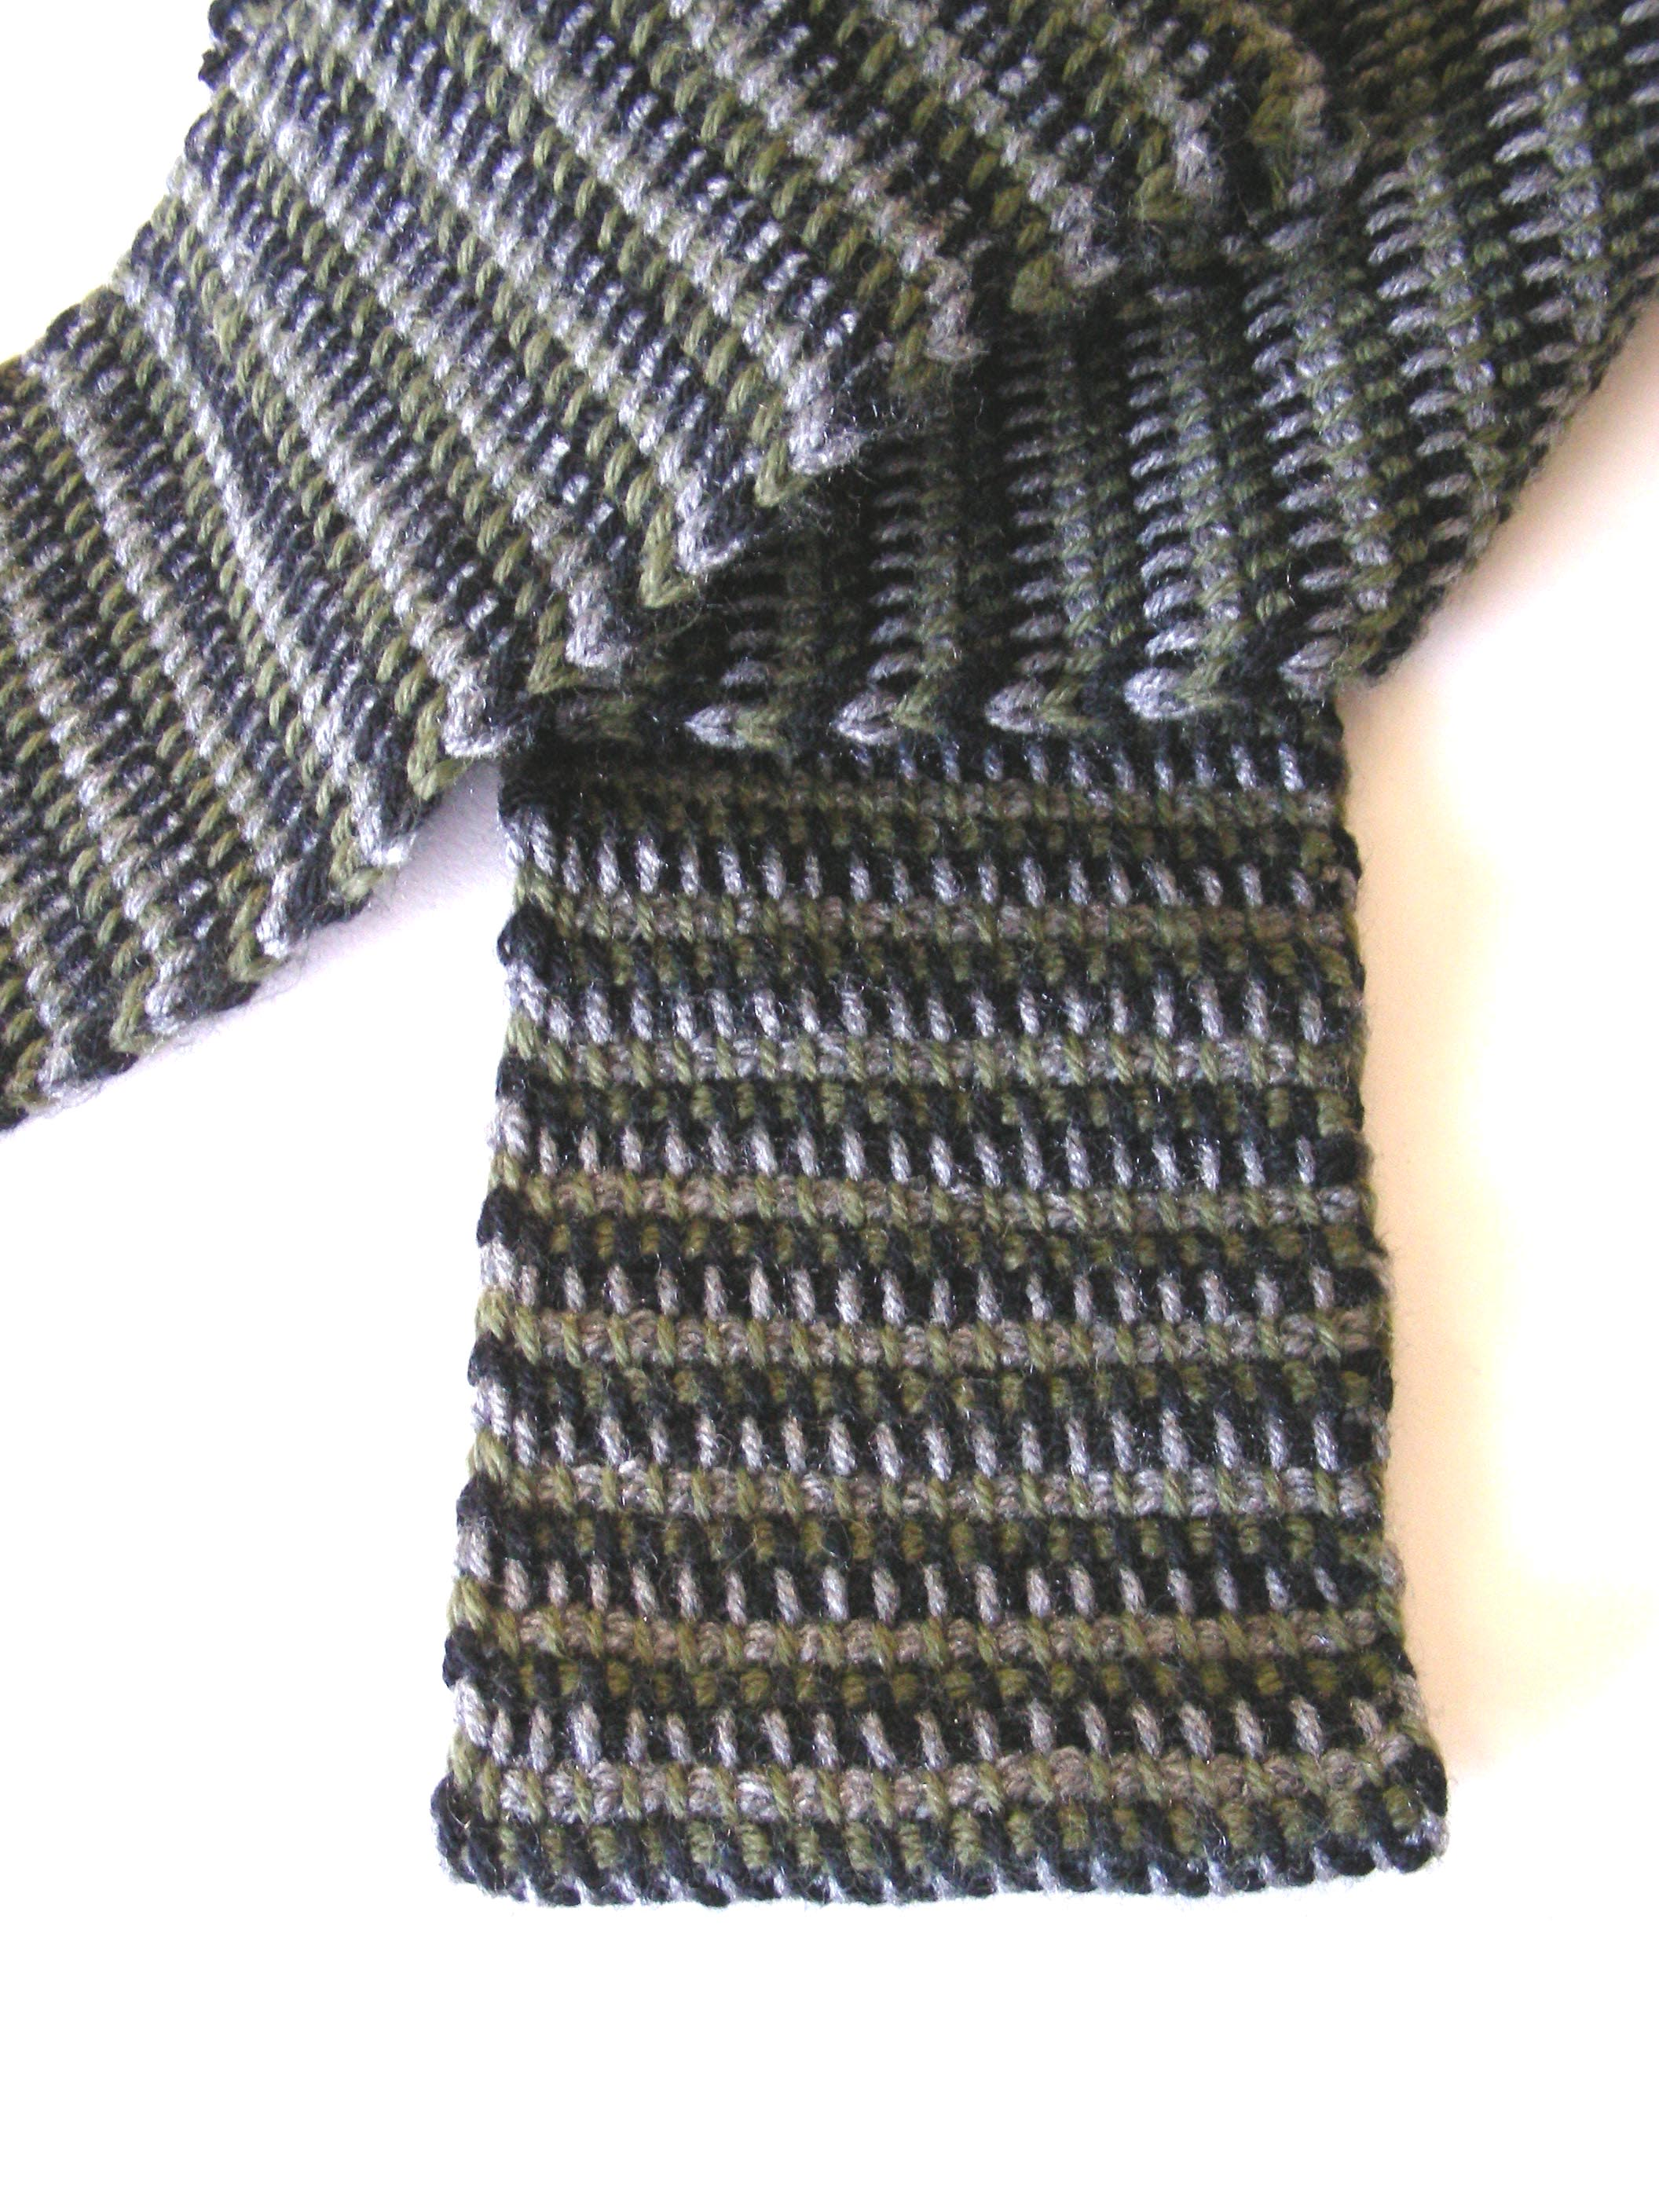 CROCHET KNIT PATTERN SCARF - Crochet ? Learn How to Crochet